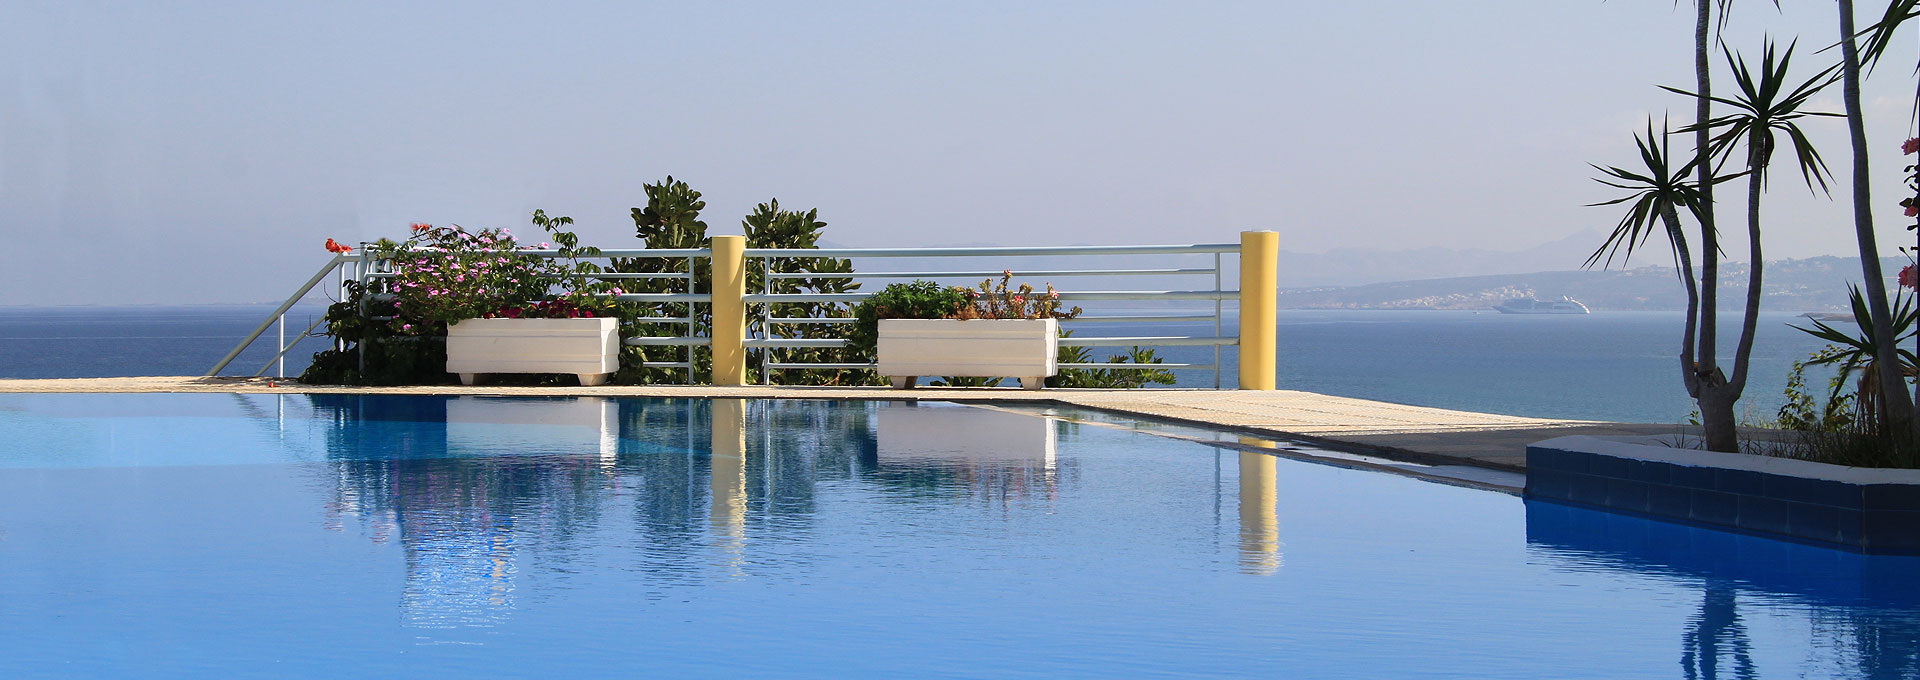 Hotels In Chania Hermes Apartments And Hermes Beach